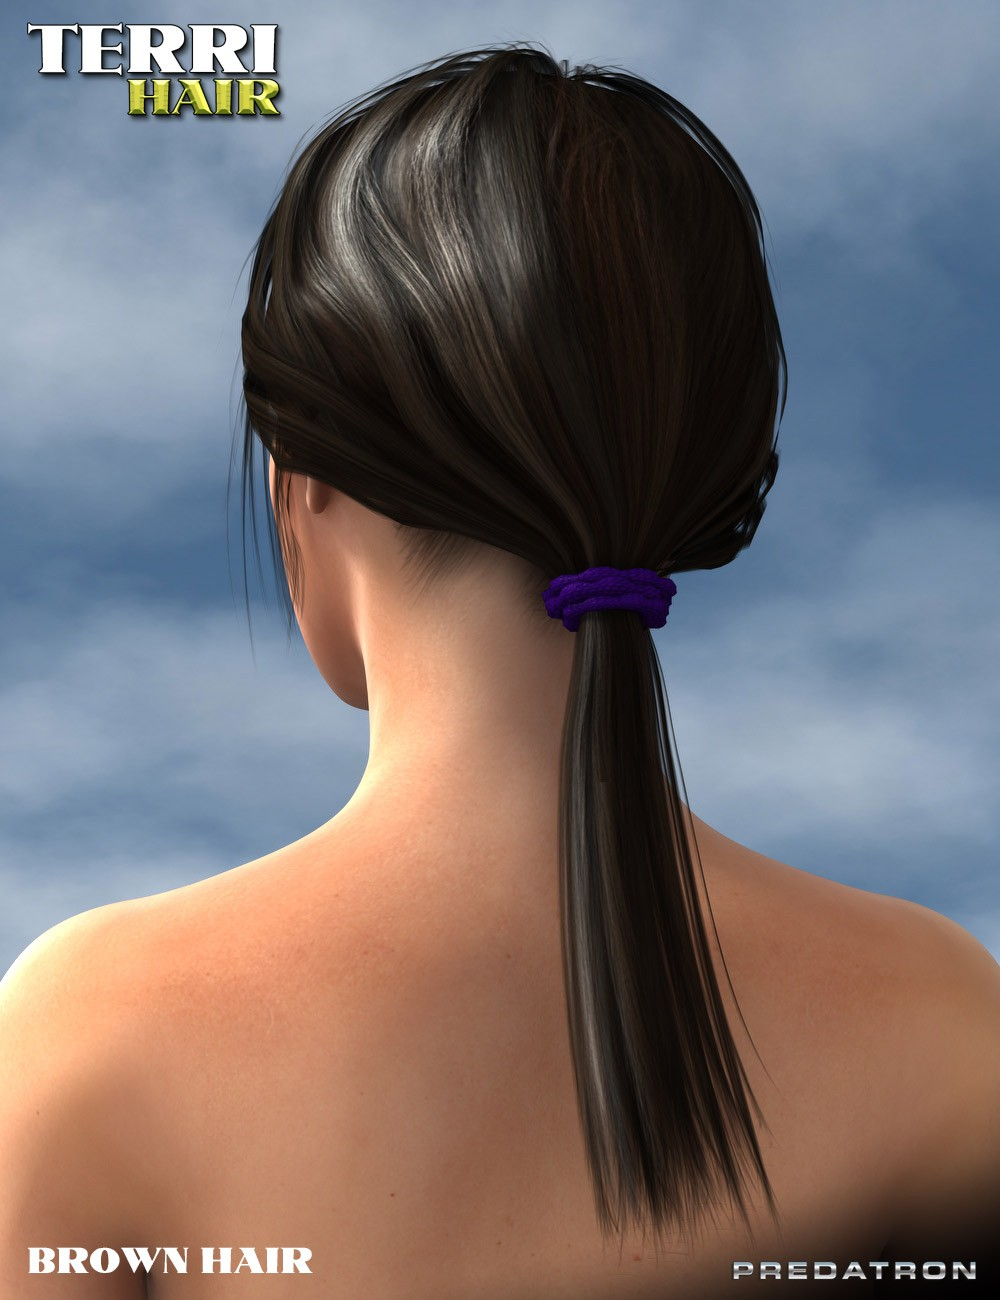 3d Models - Tourist Props and Terri Hair